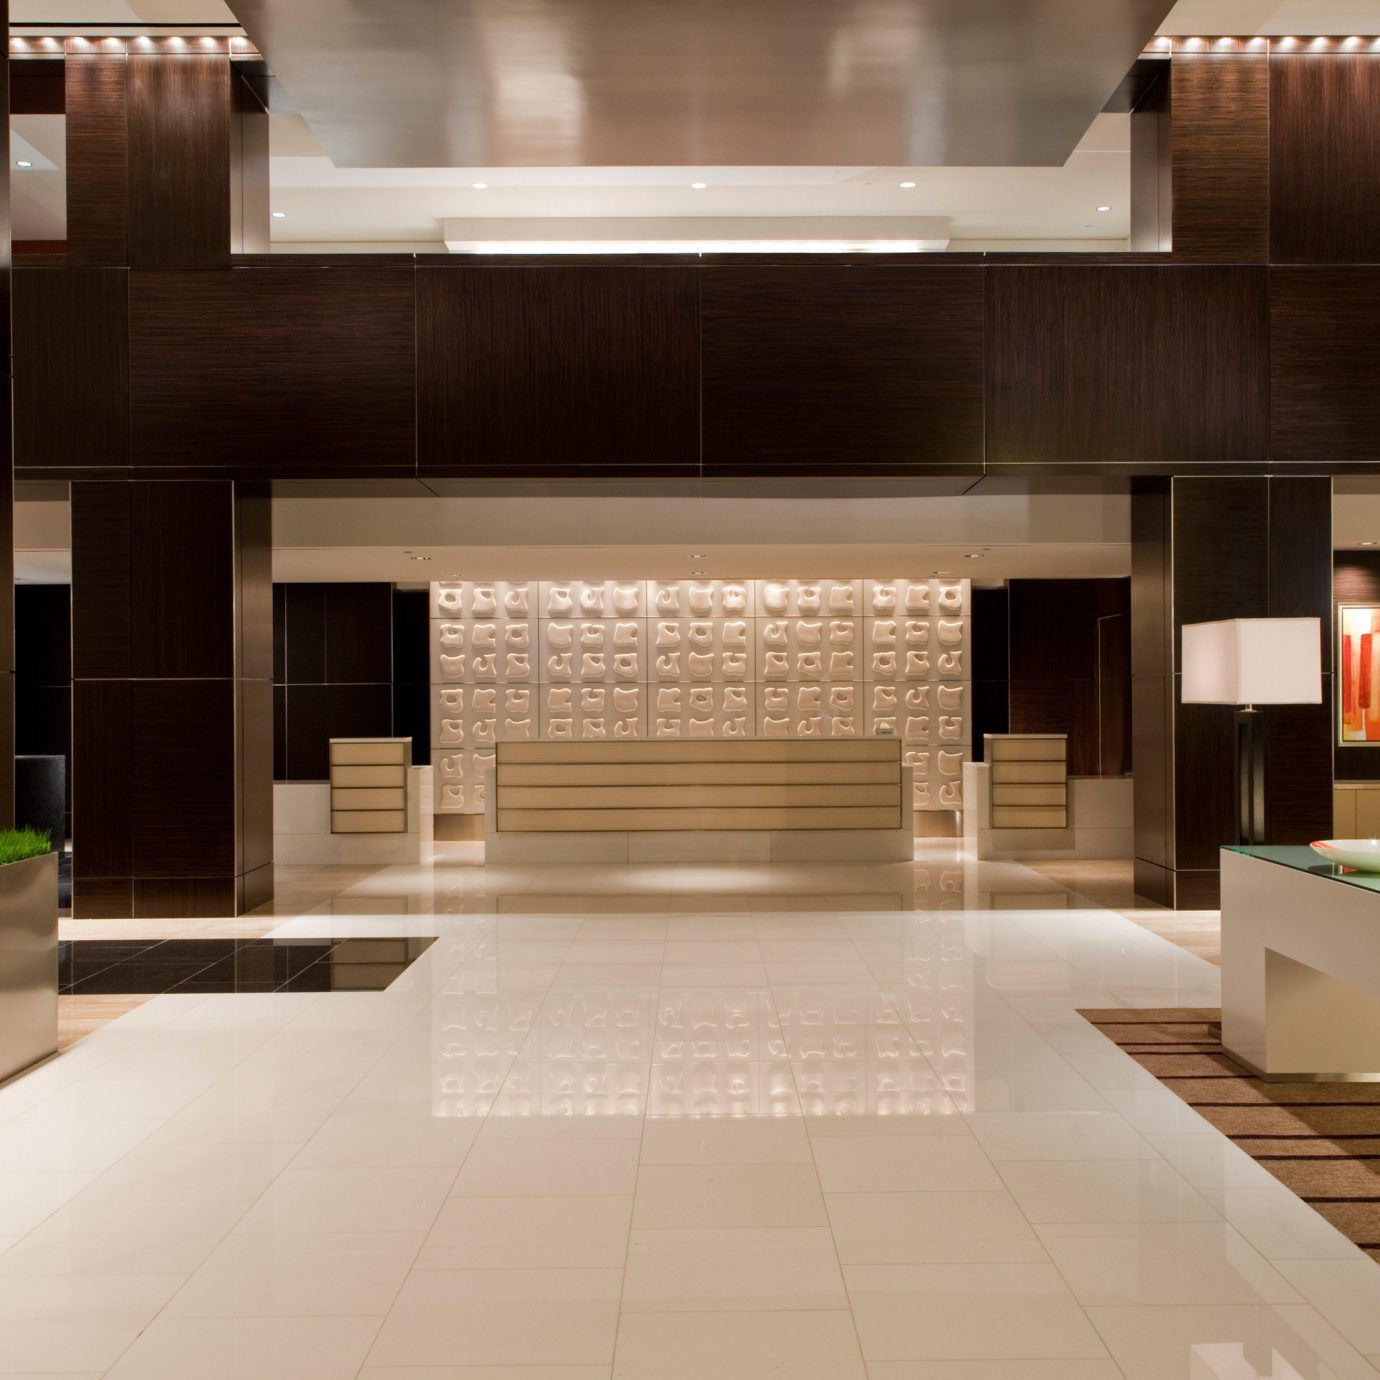 Lobby Architecture professional home flooring counter living room Modern Island